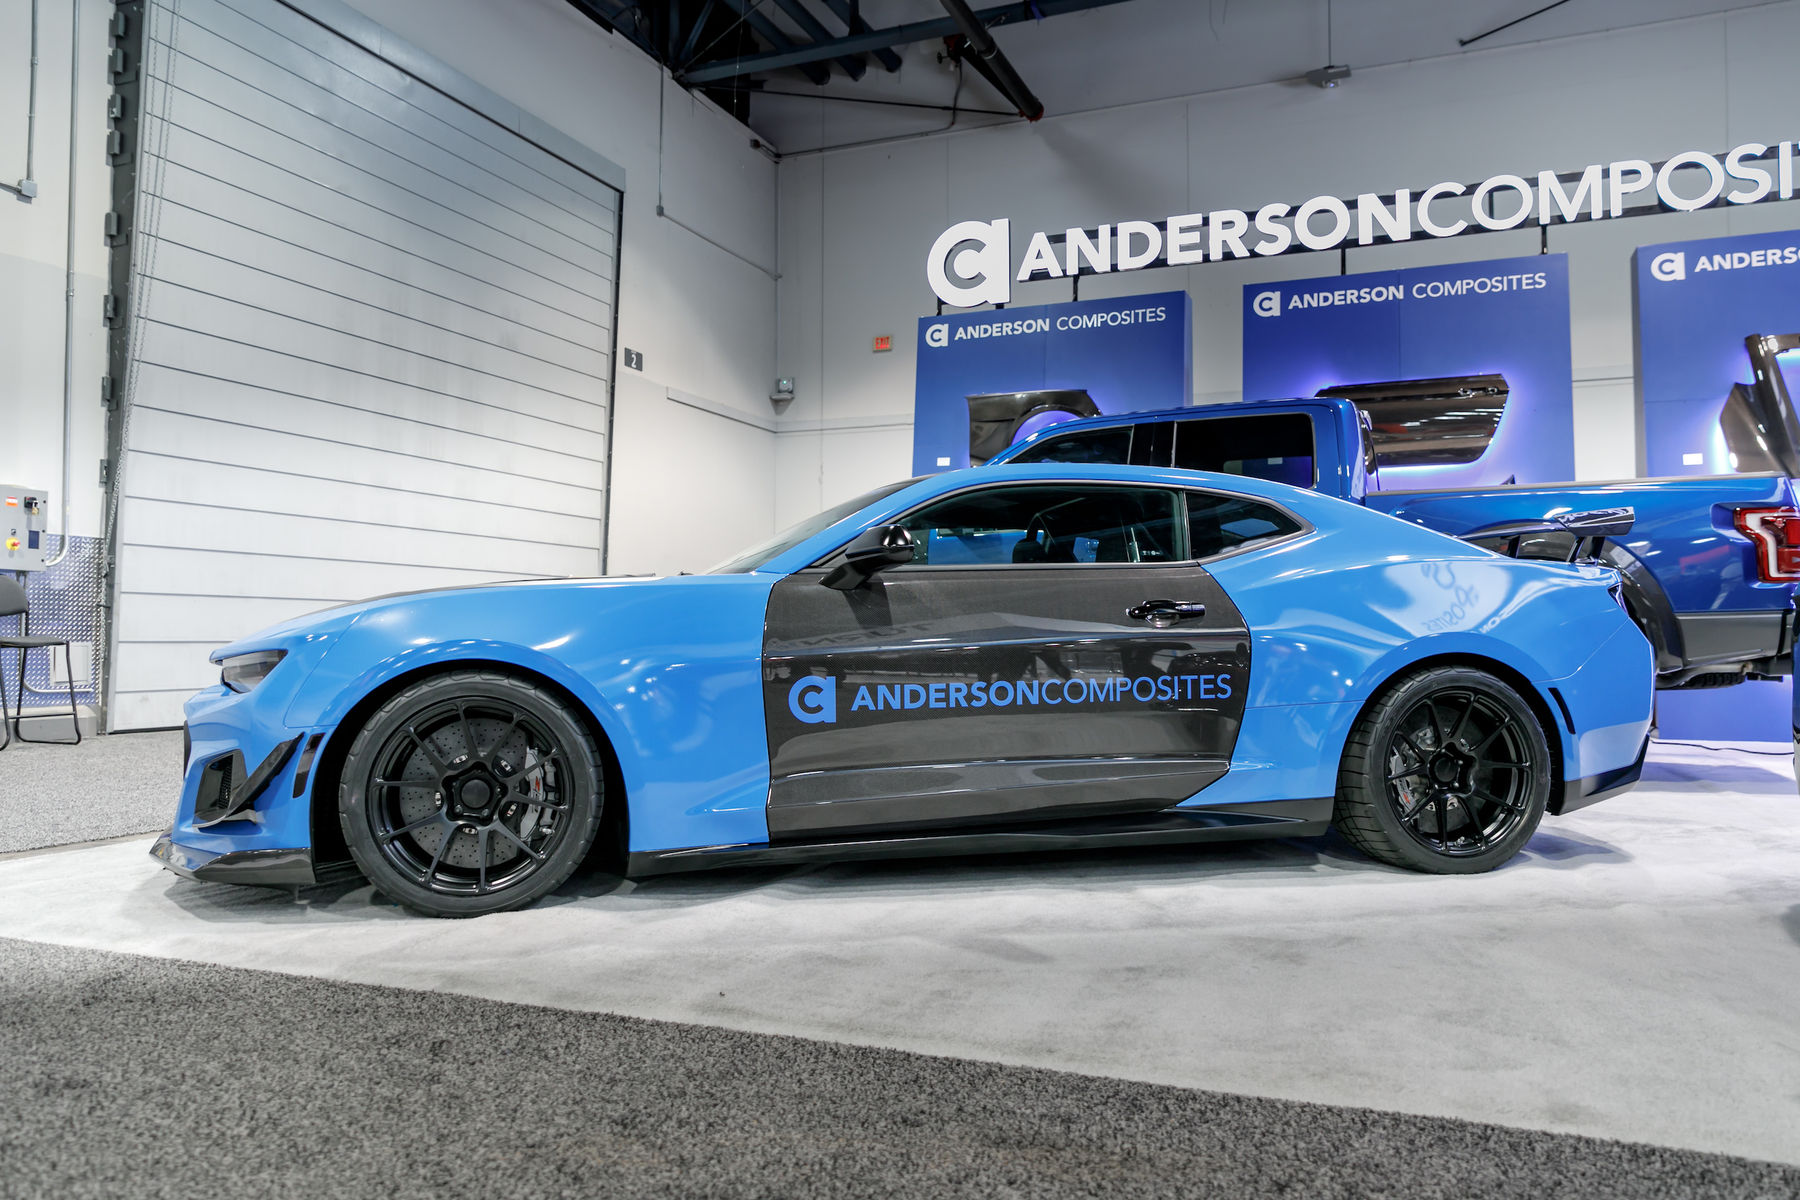 2017 Chevrolet Camaro | Anderson Composites Camaro ZL1 1LE on Forgeline One Piece Forged Monoblock GA1R Open Lug Wheels